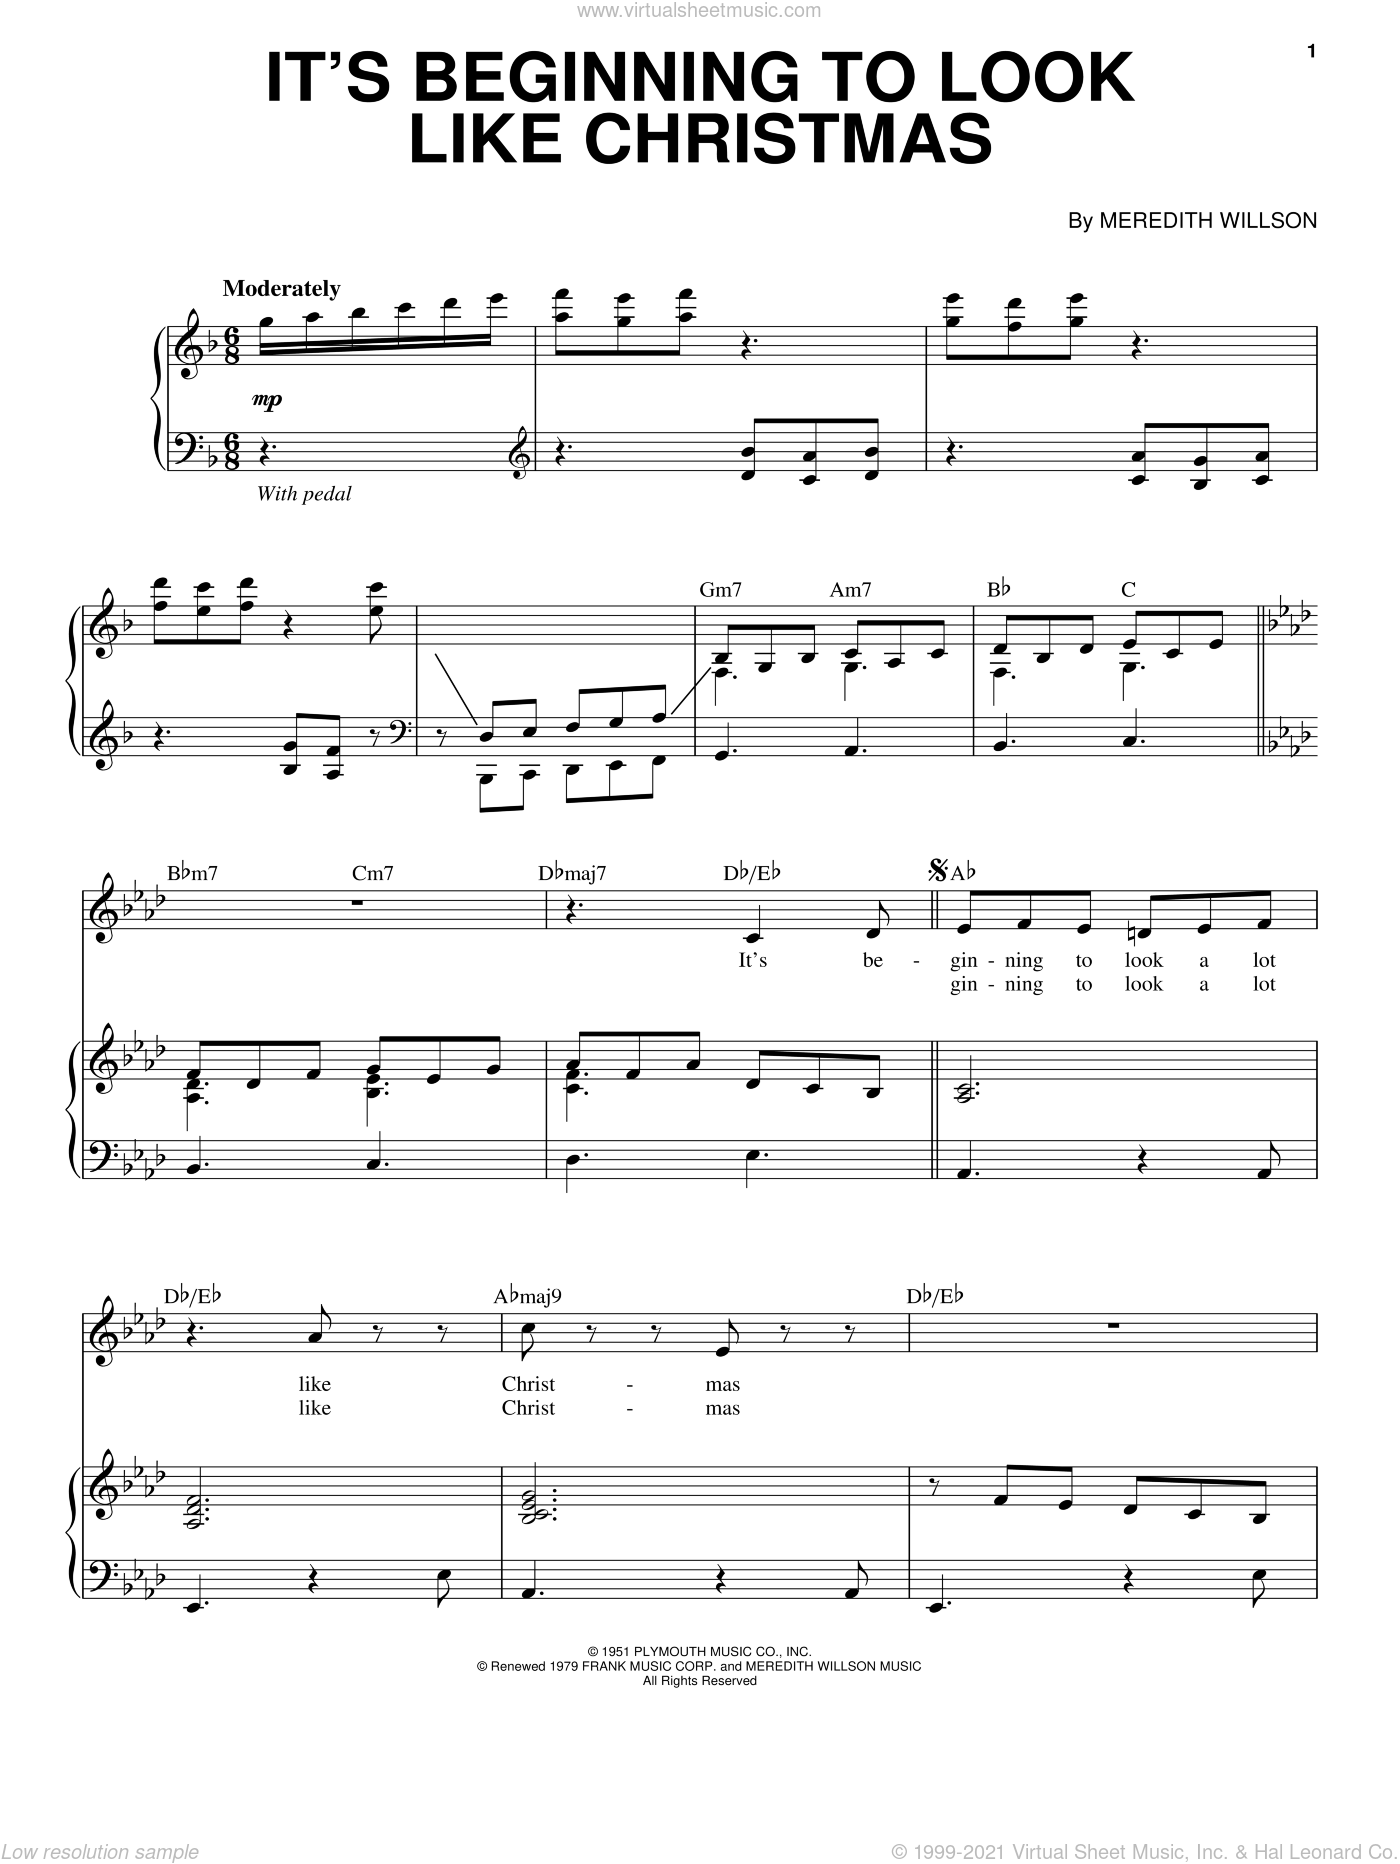 It's Beginning To Look Like Christmas sheet music for voice and piano by Johnny Mathis and Meredith Willson, intermediate skill level